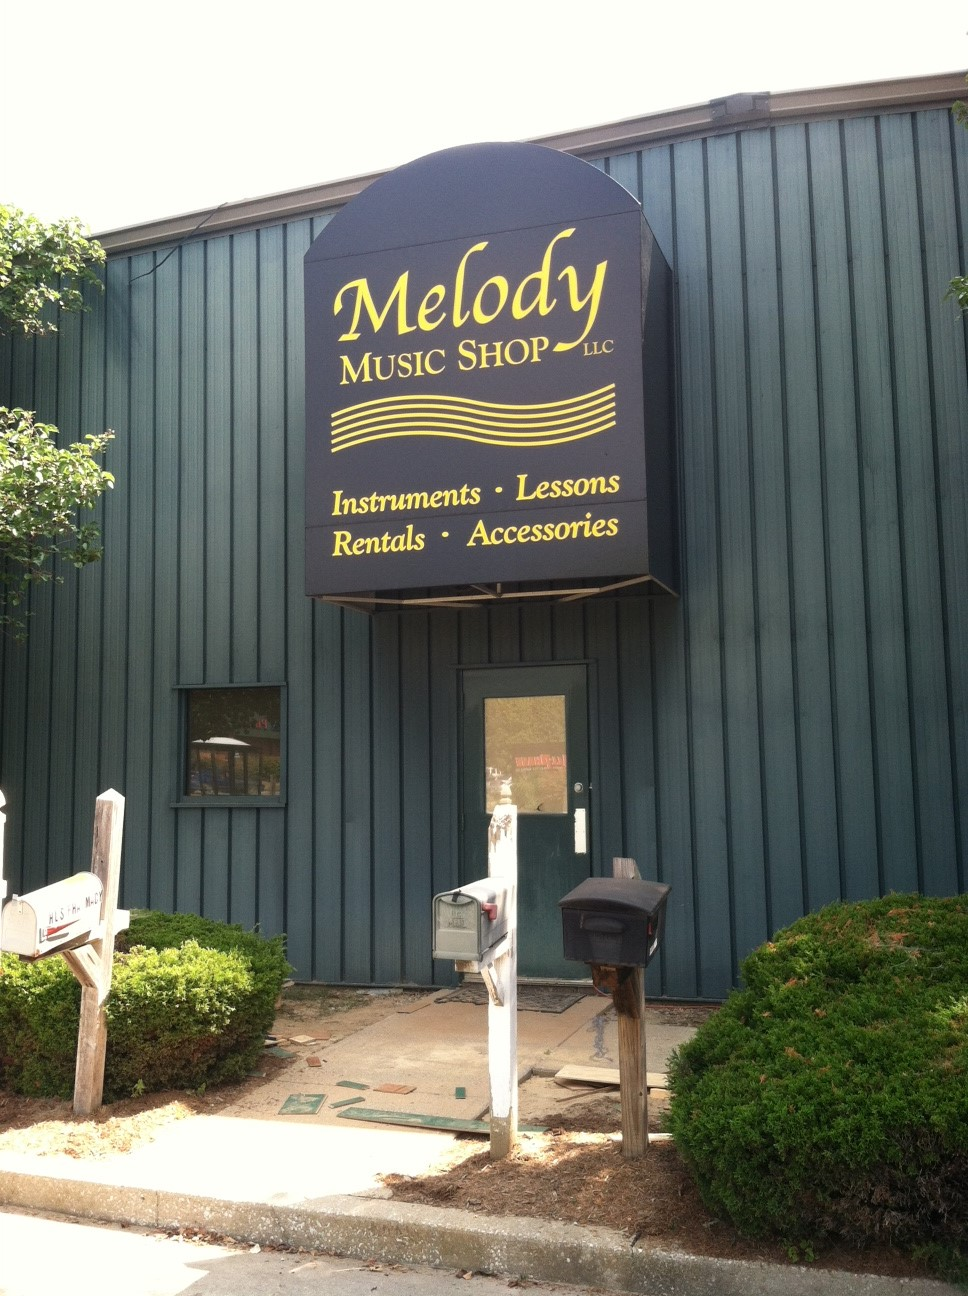 awnings-melody-music-shop